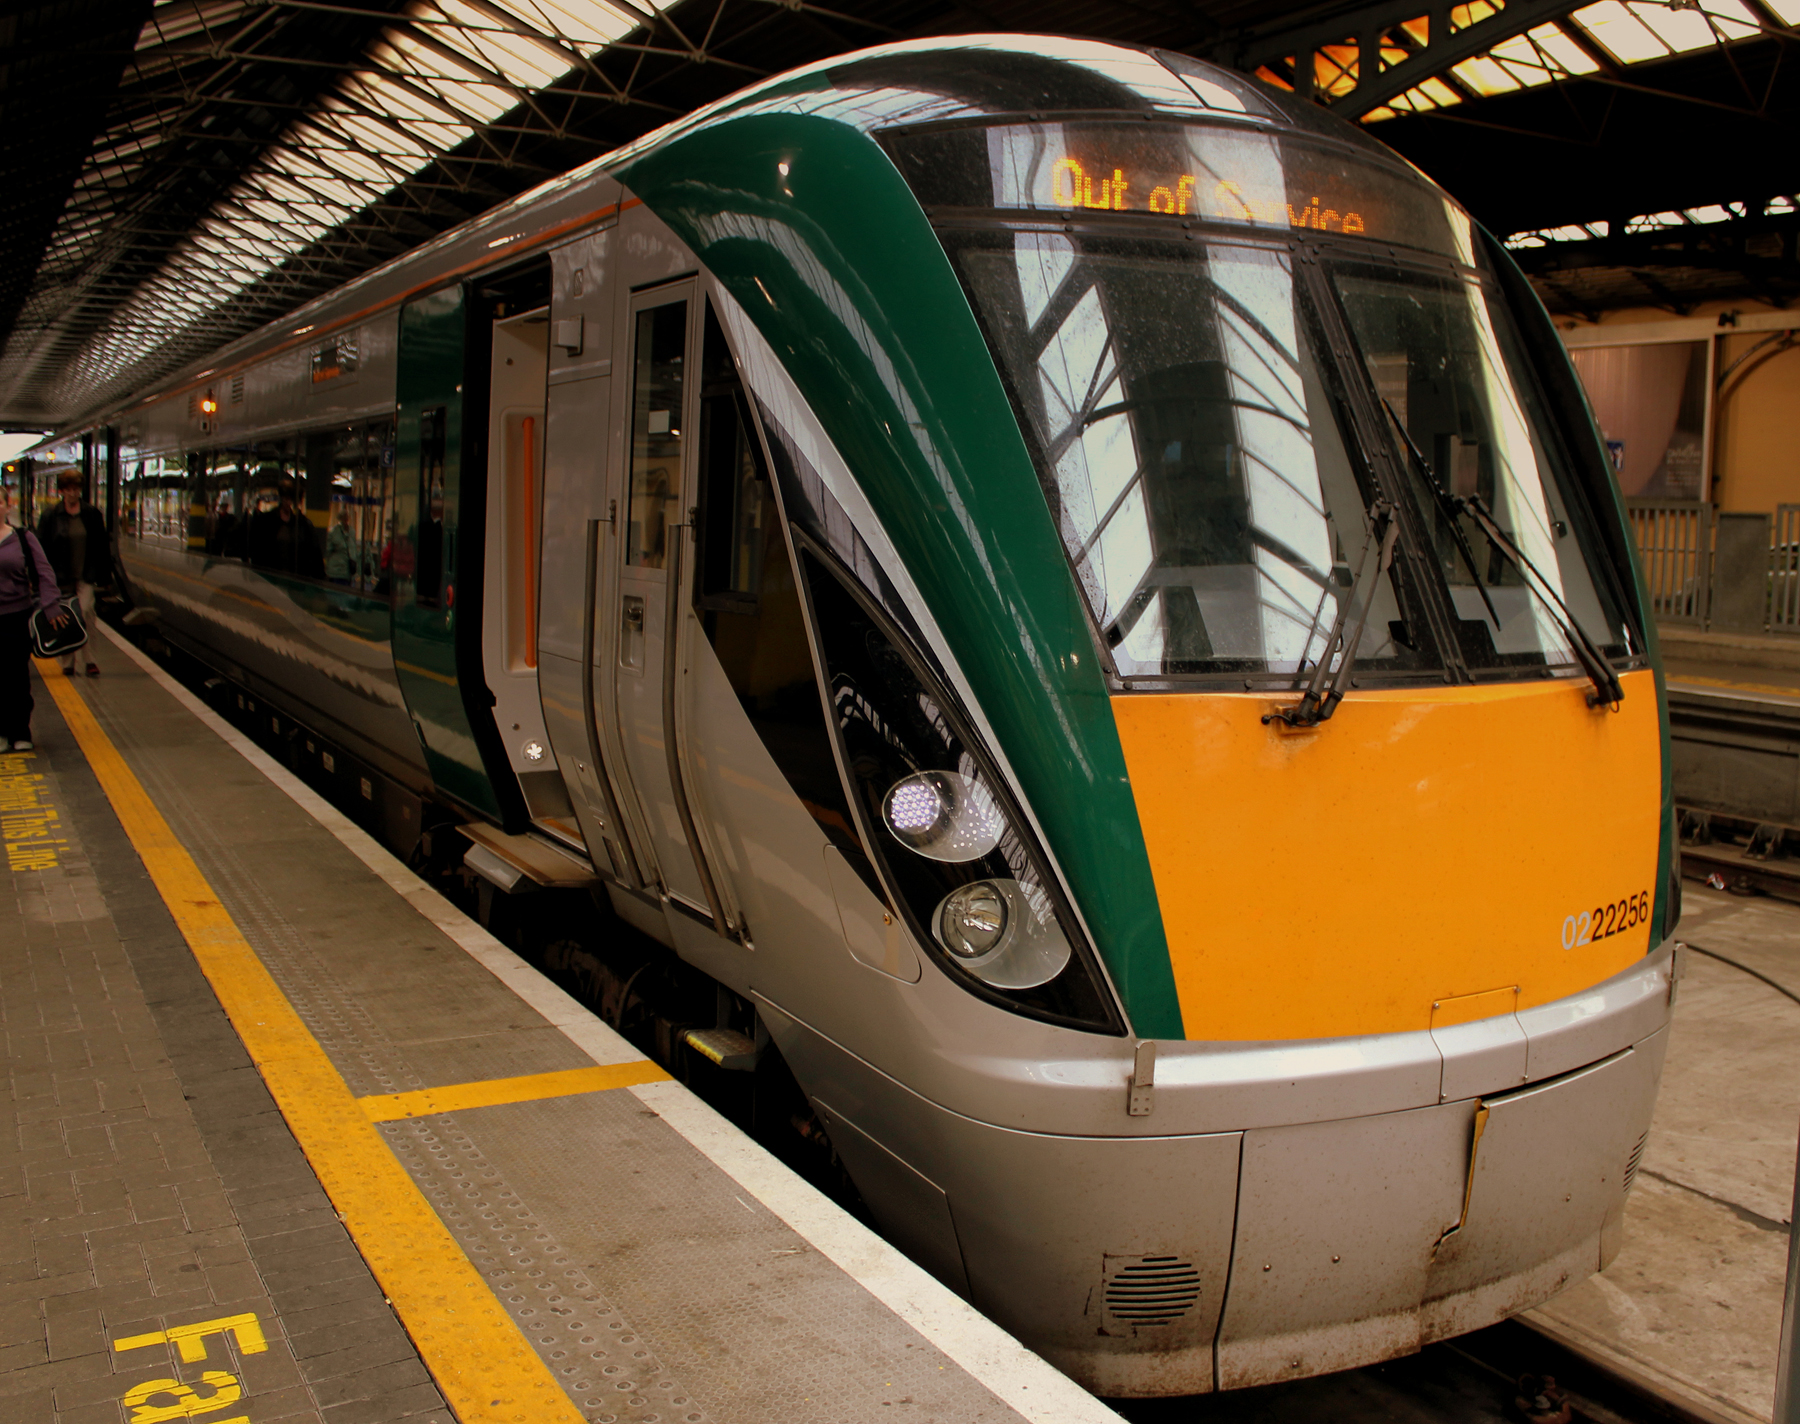 Поезд от станции Dublin Heuston